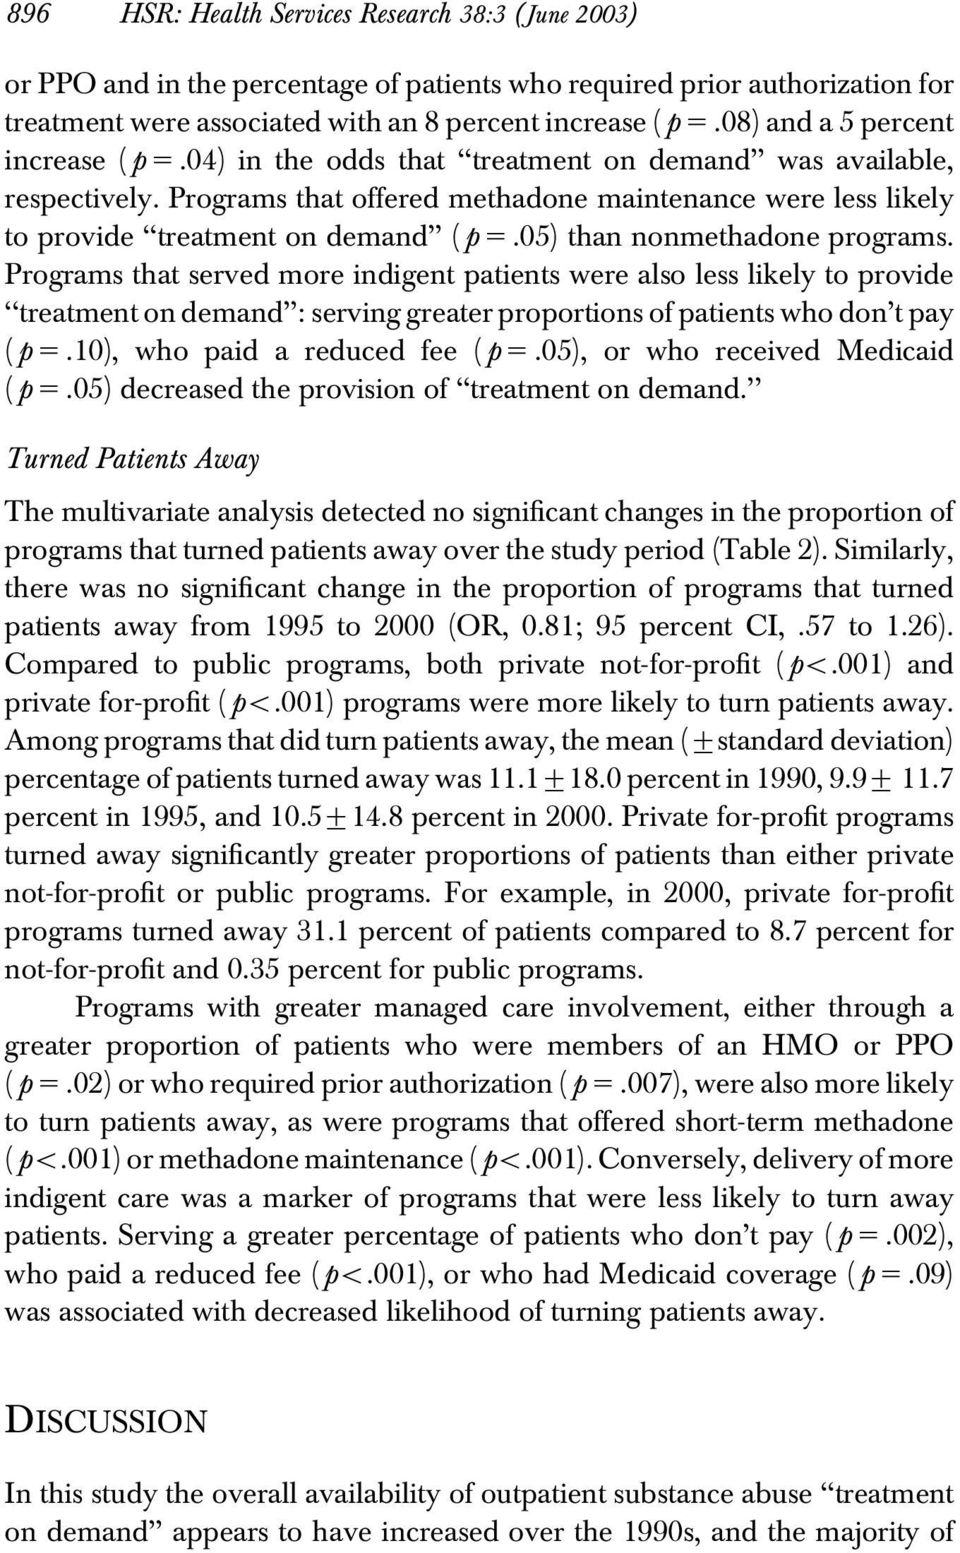 Programs that offered methadone maintenance were less likely to provide treatment on demand ( p 5.05) than nonmethadone programs.